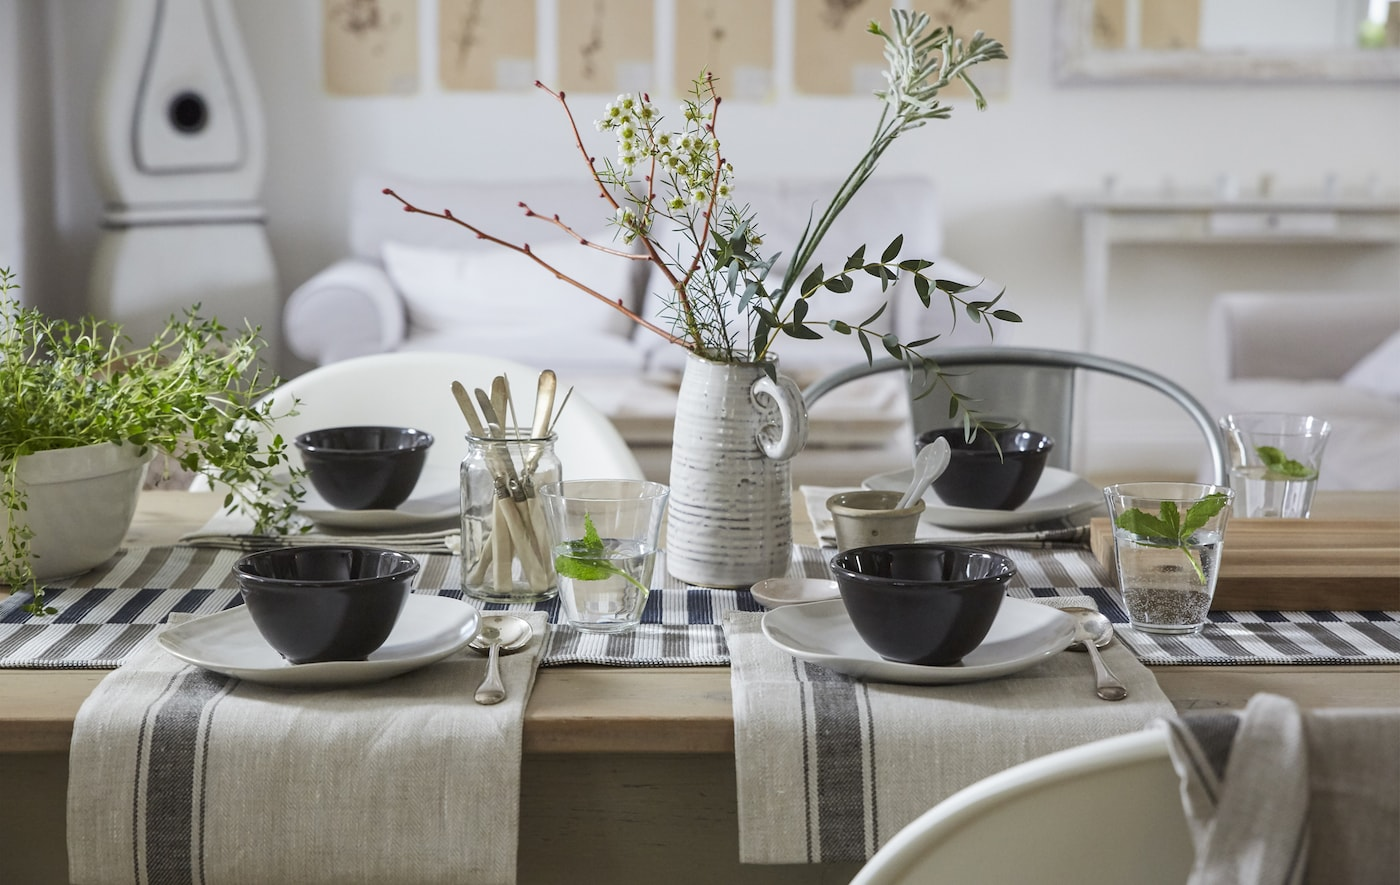 A neutral-colored table setting with cotton napkins, simple place settings and a natural centerpiece.